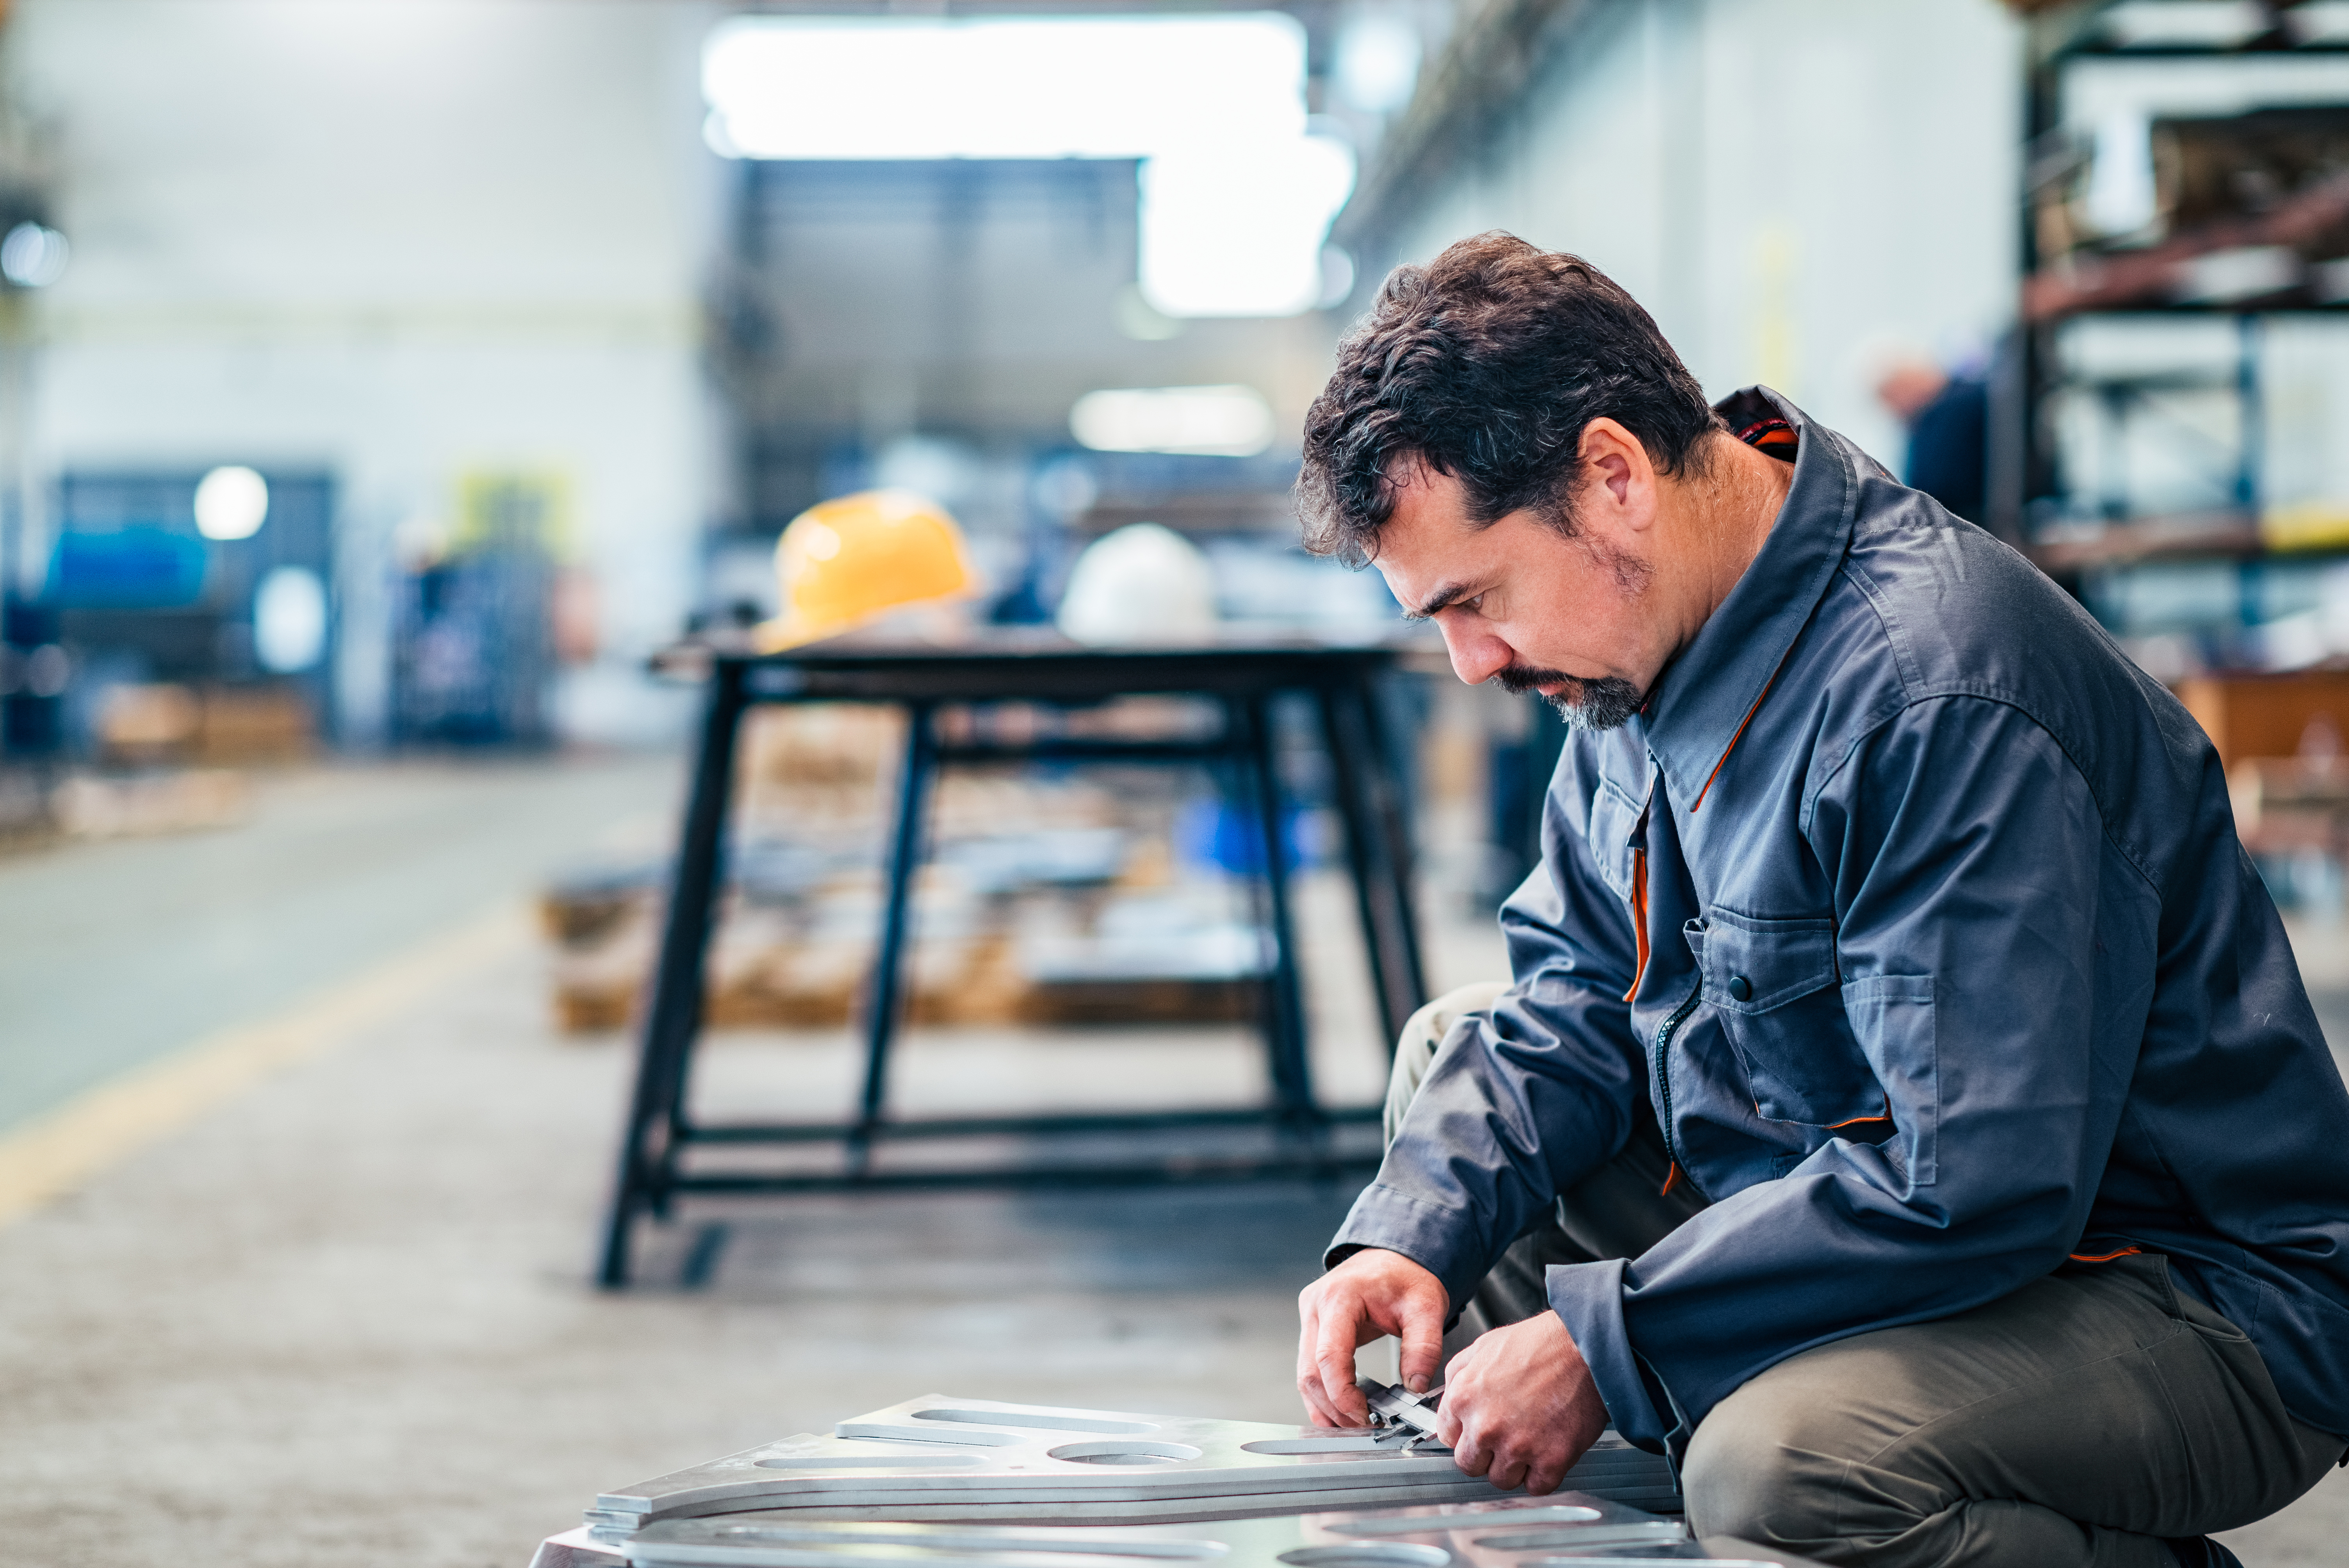 Man working in industrial sector